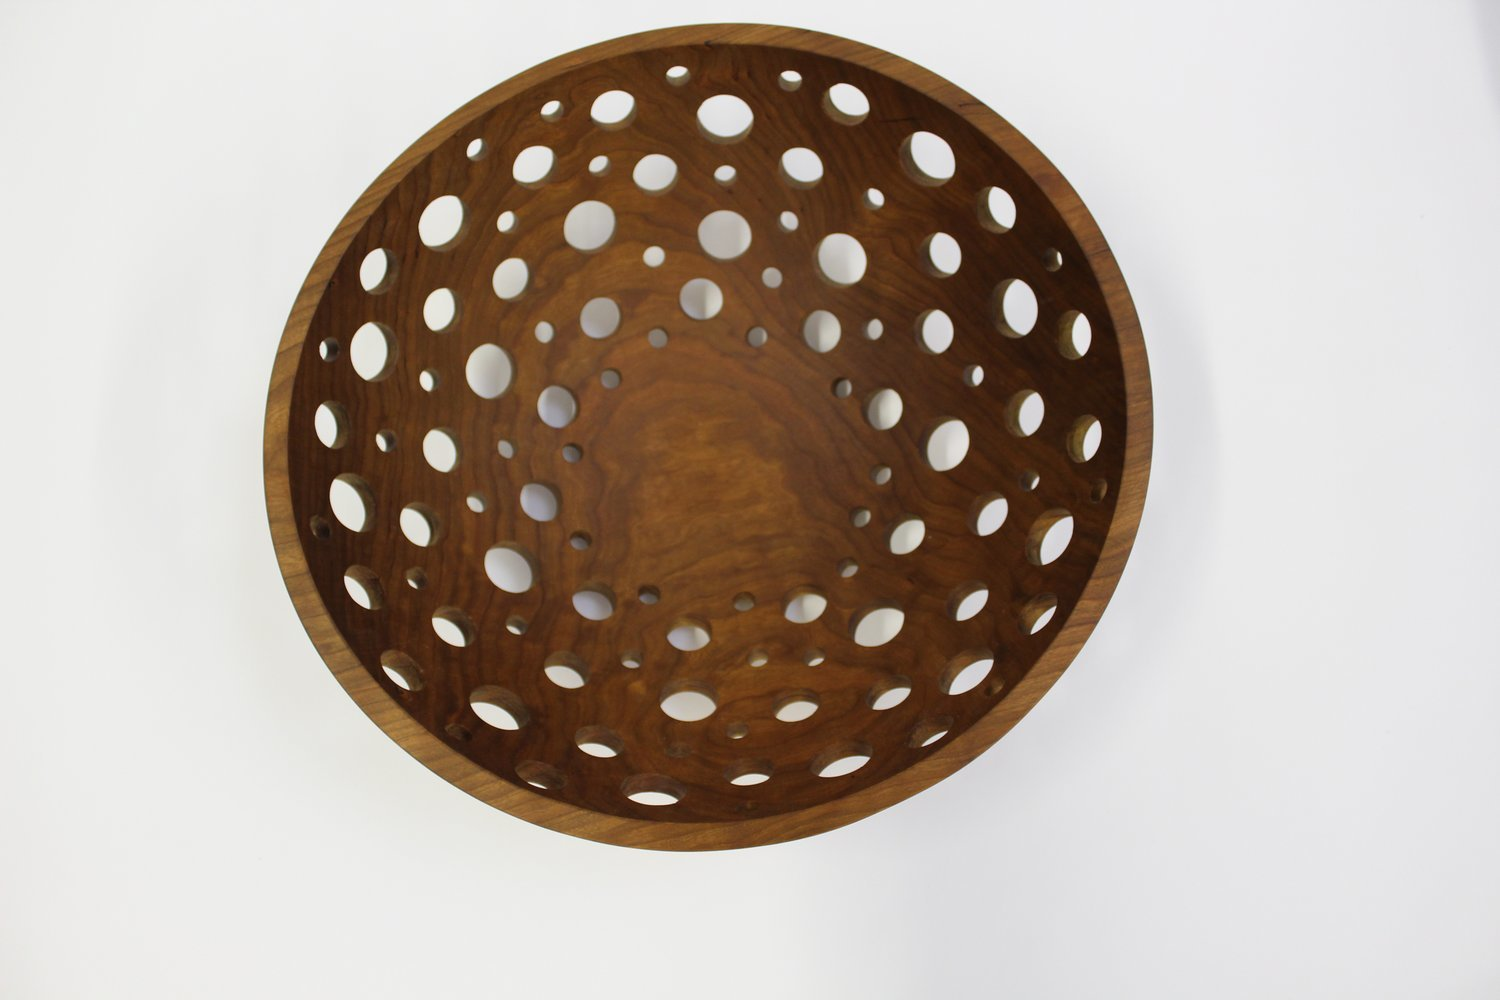 17 Inch Cherry Fruit Bowl Bee S Oil Finish Holland